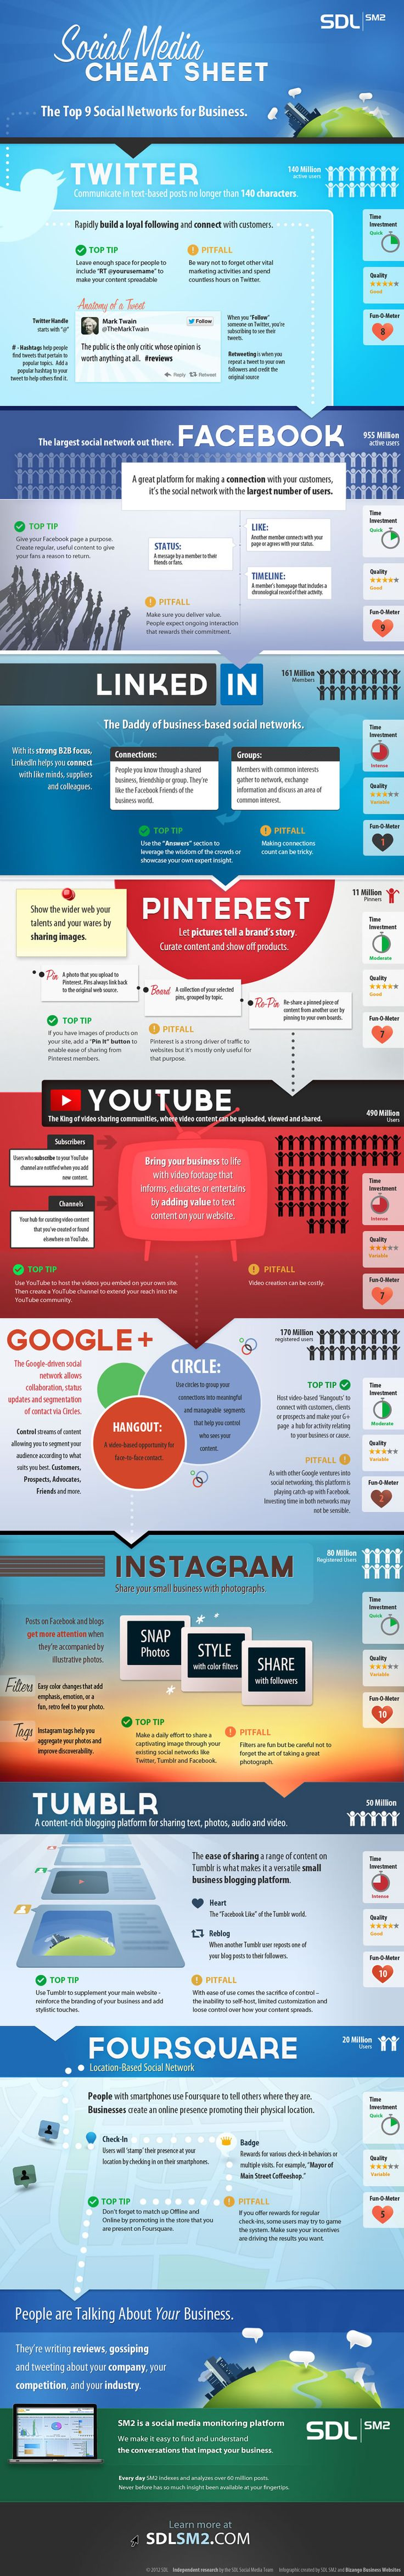 Ultimate Tips * Social Media Cheat Sheet For Businesses {Infographic] #SEO #LocalSearch #SearchEngineOptimization #Google #GoogleSEO